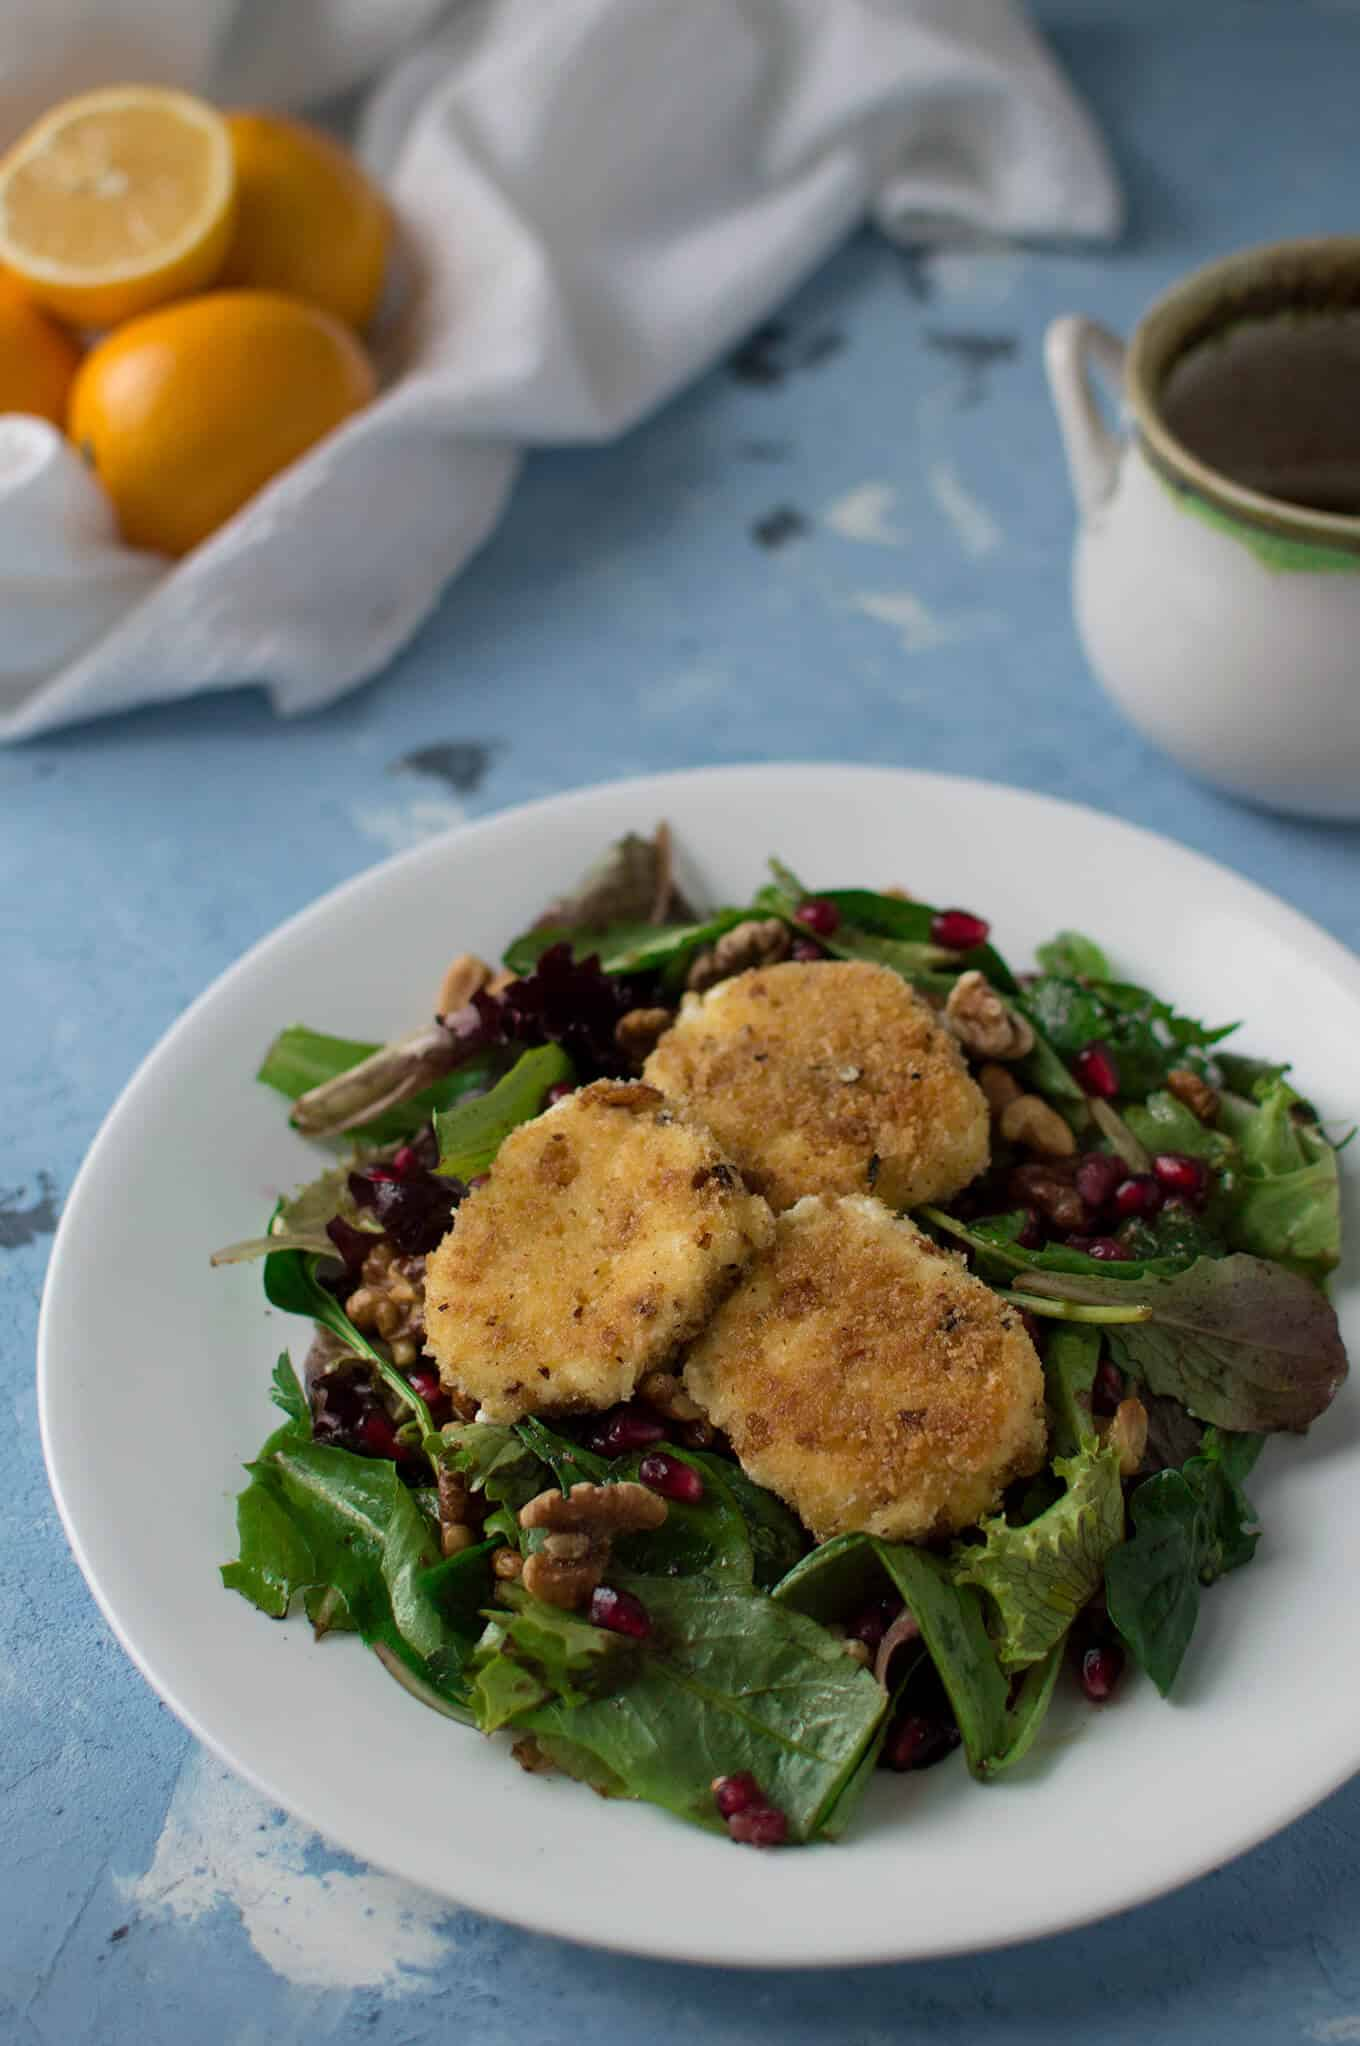 A plate of fried goat cheese salad.